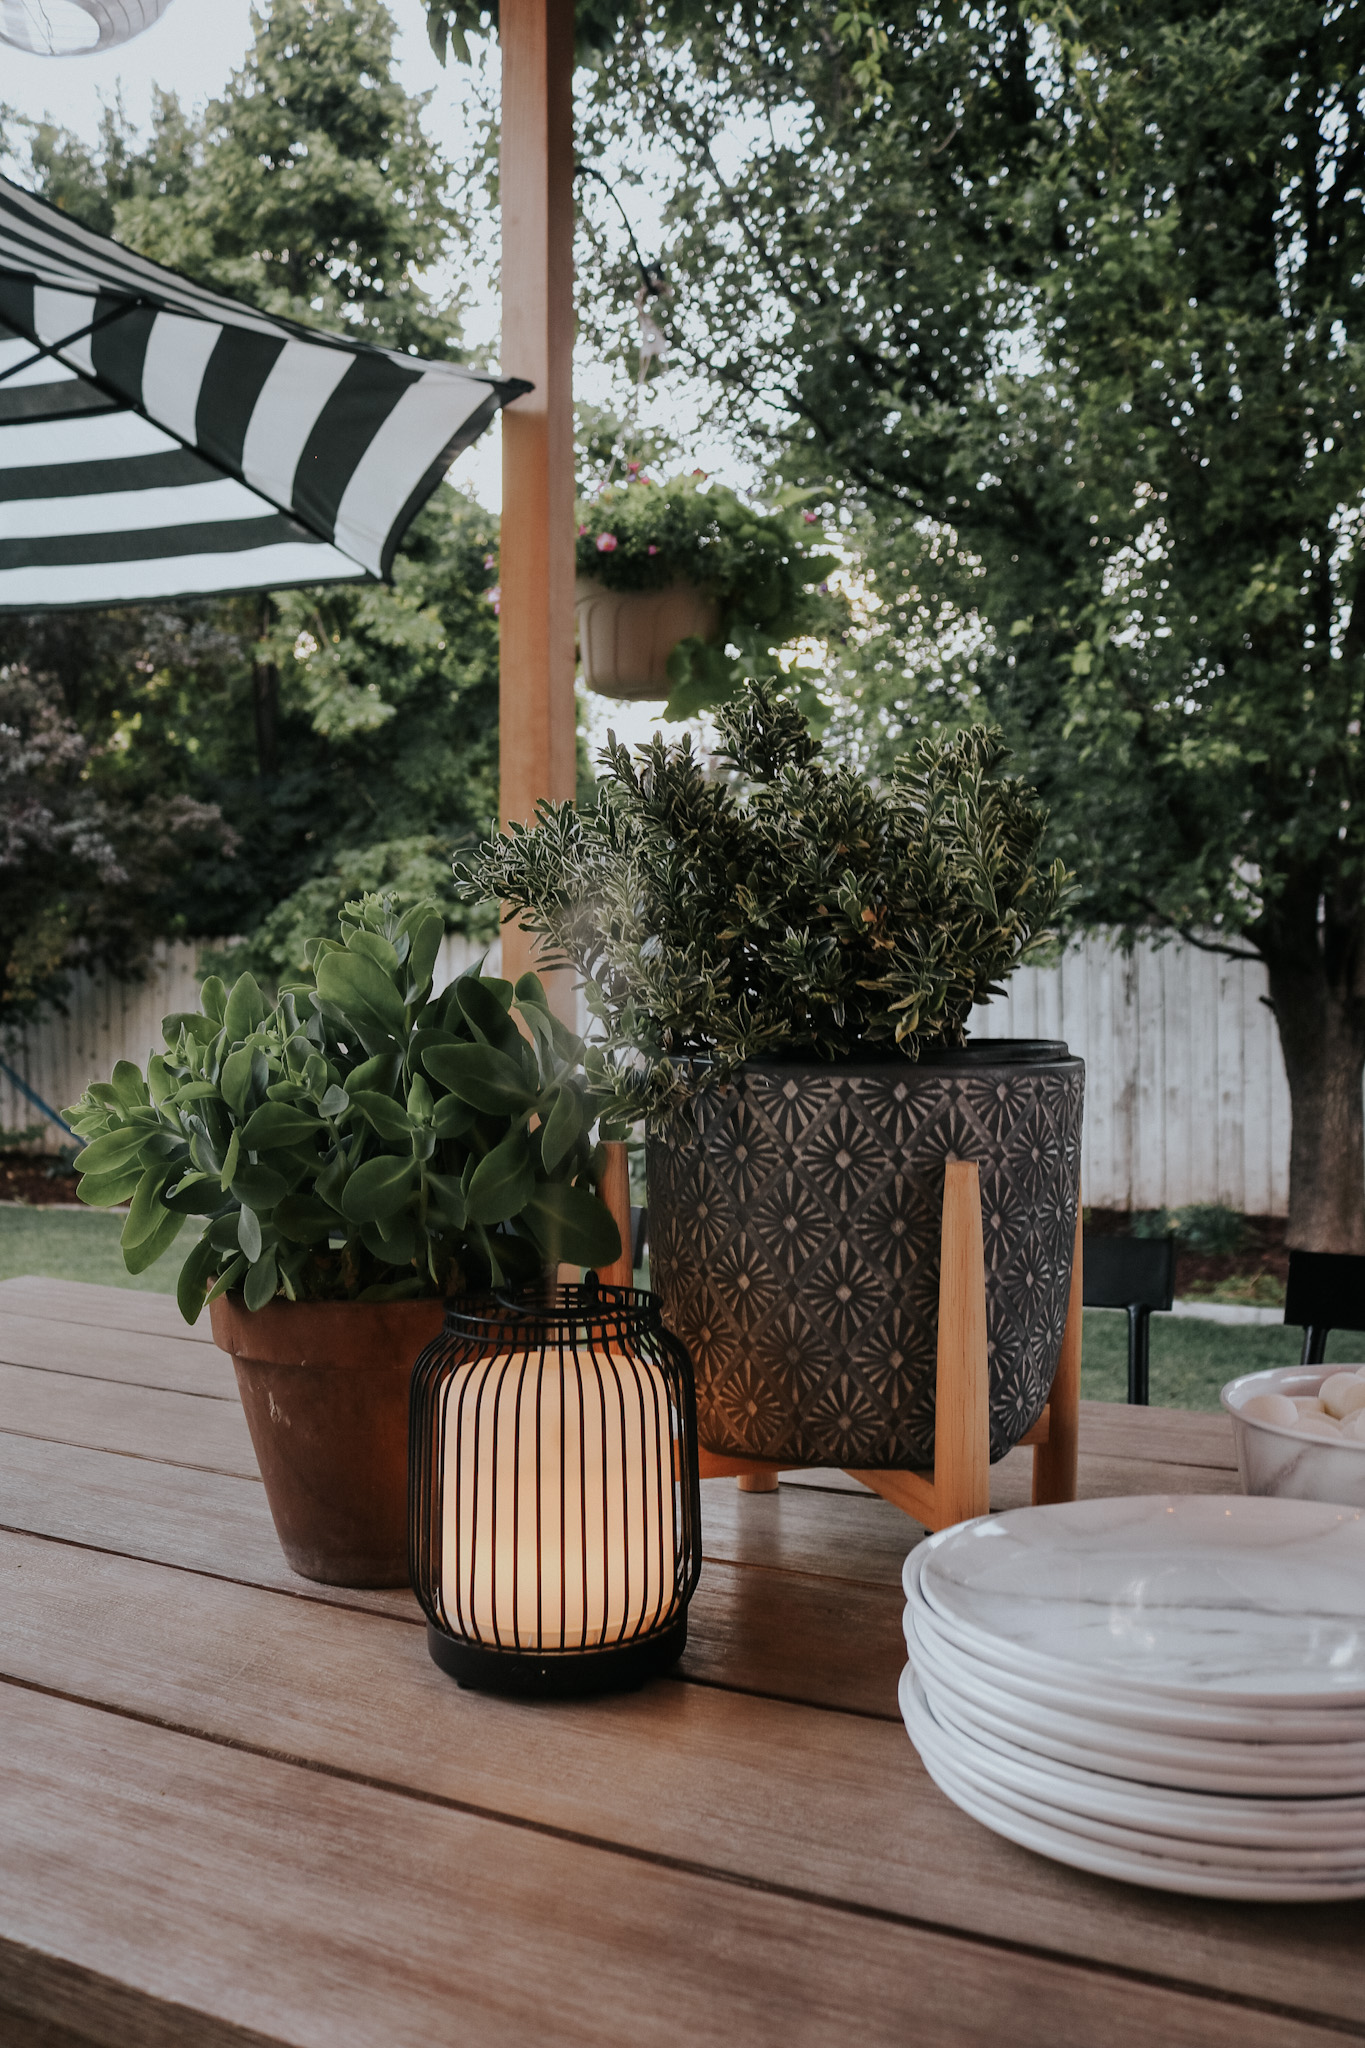 Affordable Backyard Ideas- Hanging Chairs, Sectional and More